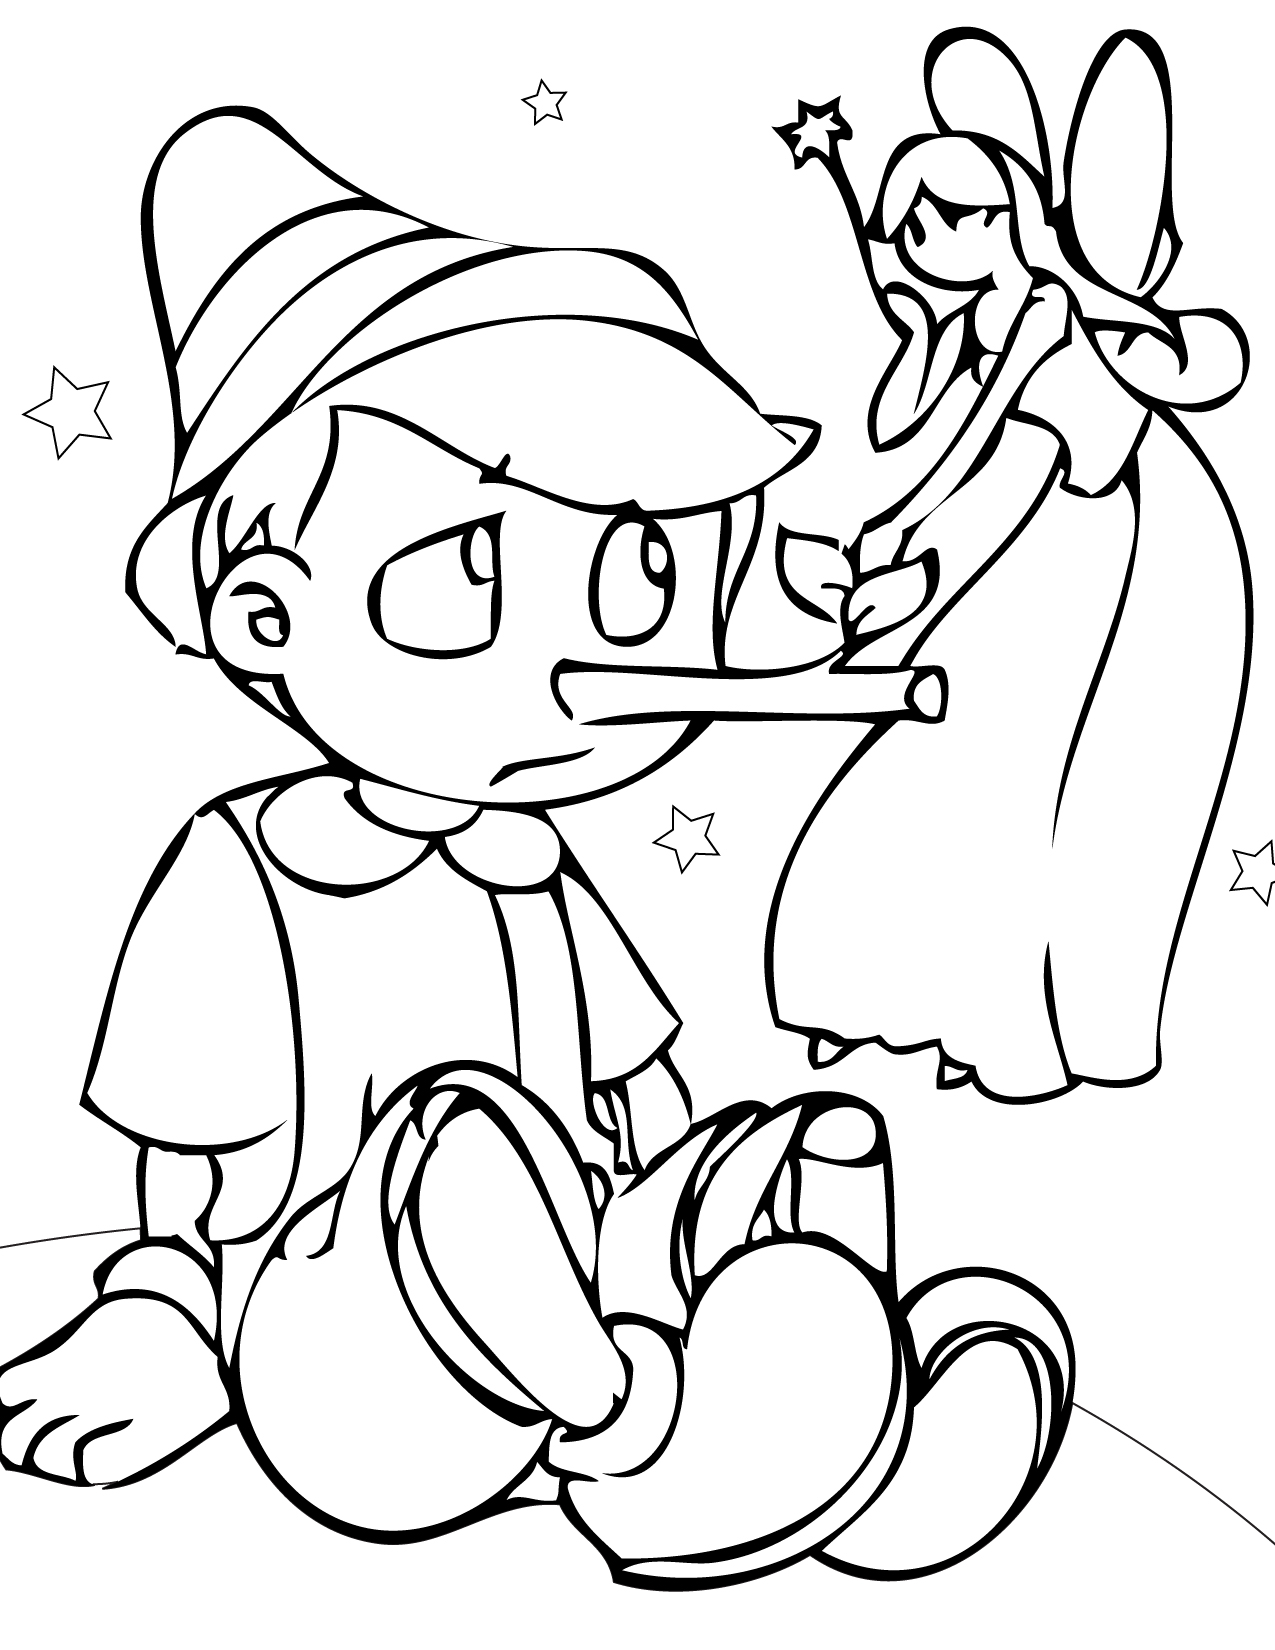 pinocchio coloring page to print,printable,coloring pages